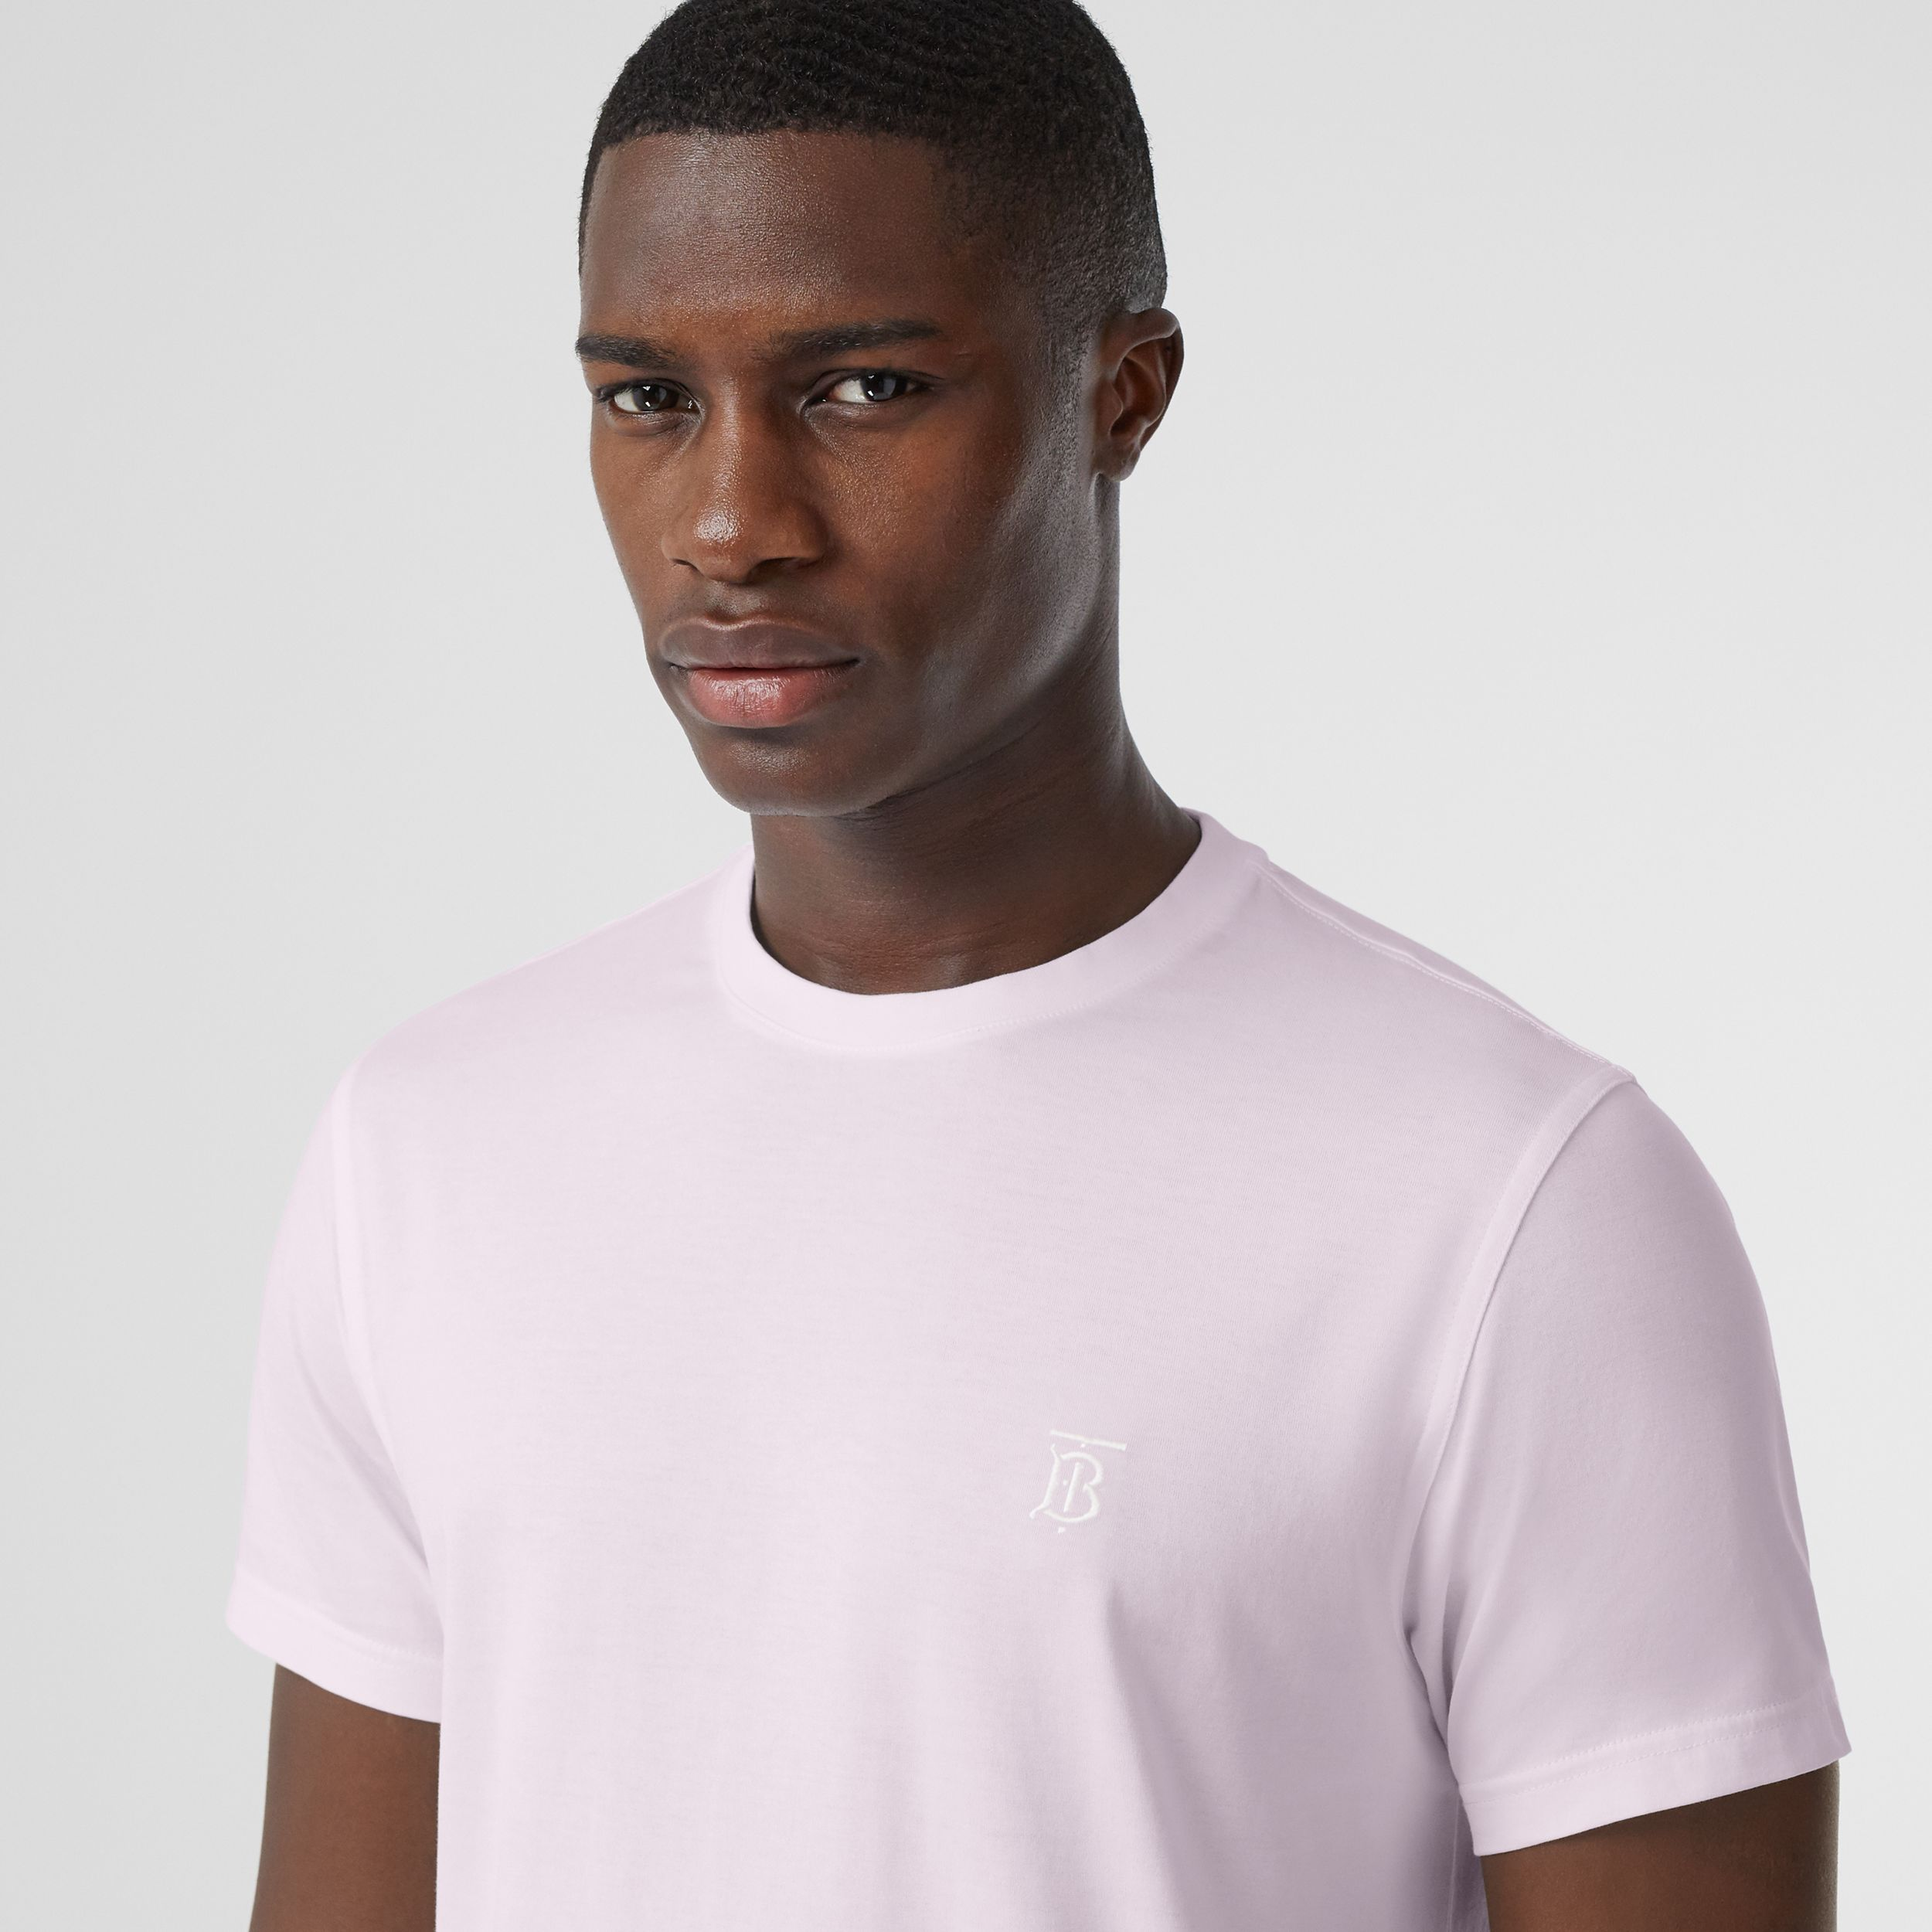 Monogram Motif Cotton T-shirt in Pale Thistle - Men | Burberry - 2